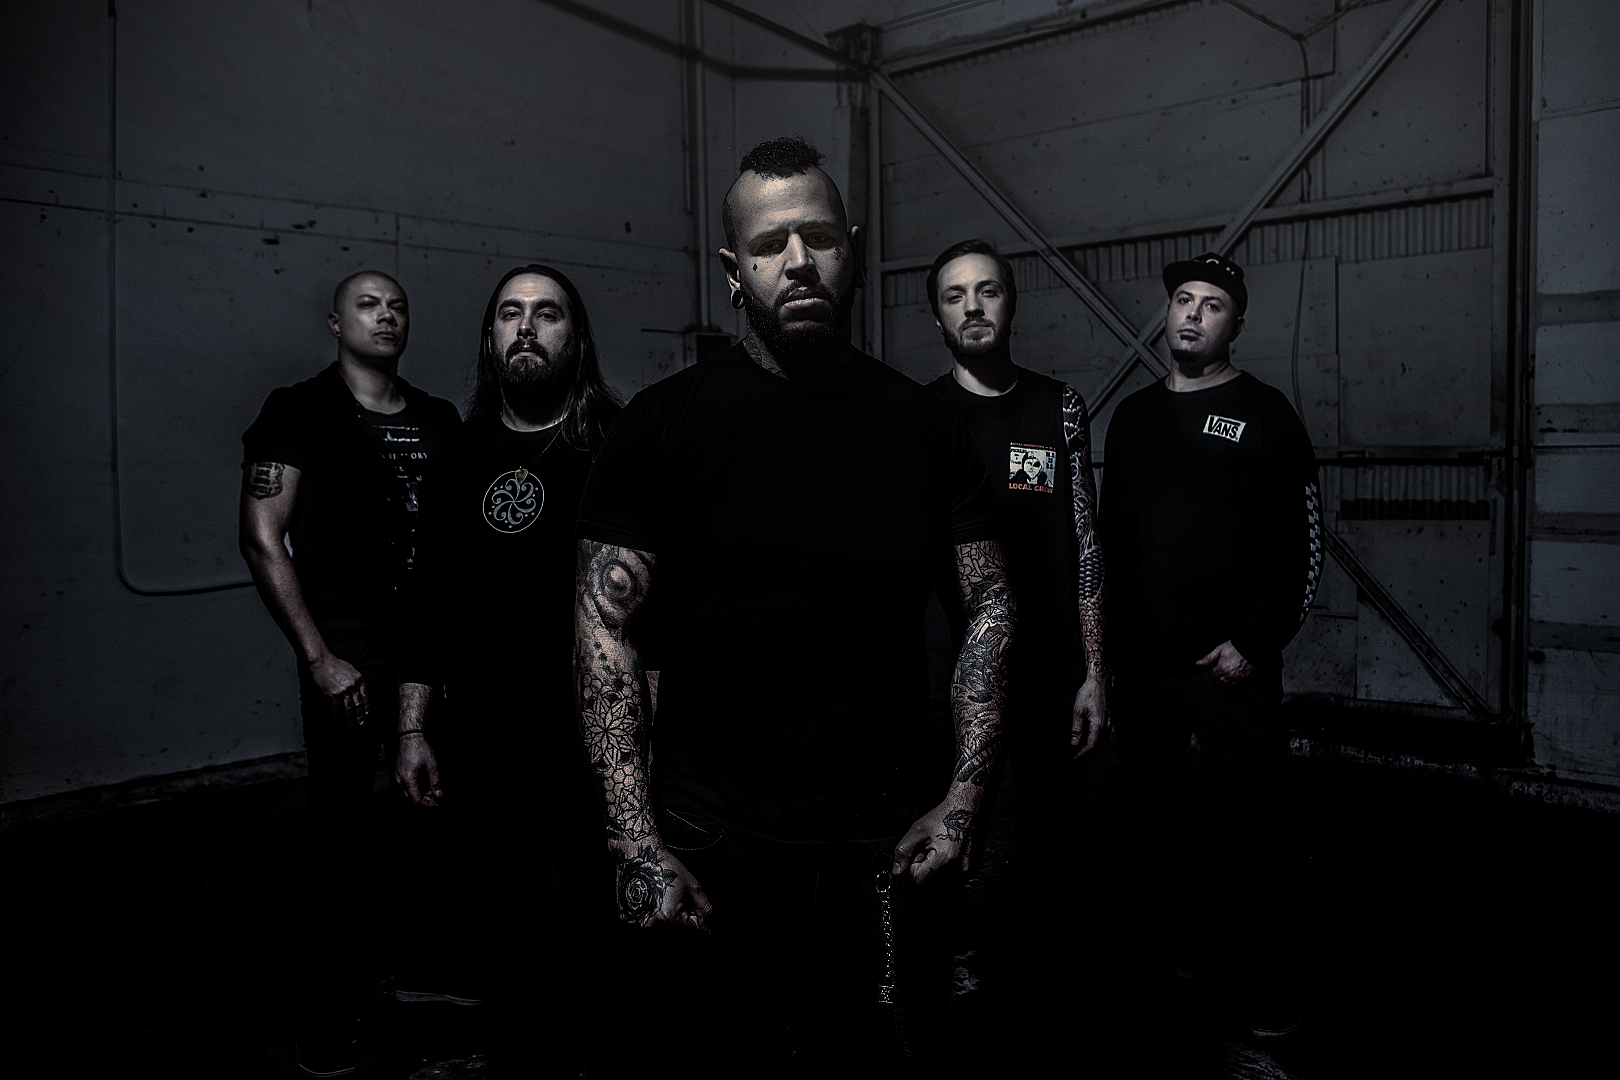 Bad Wolves Release Their Cover of The Cranberries' 'Zombie'